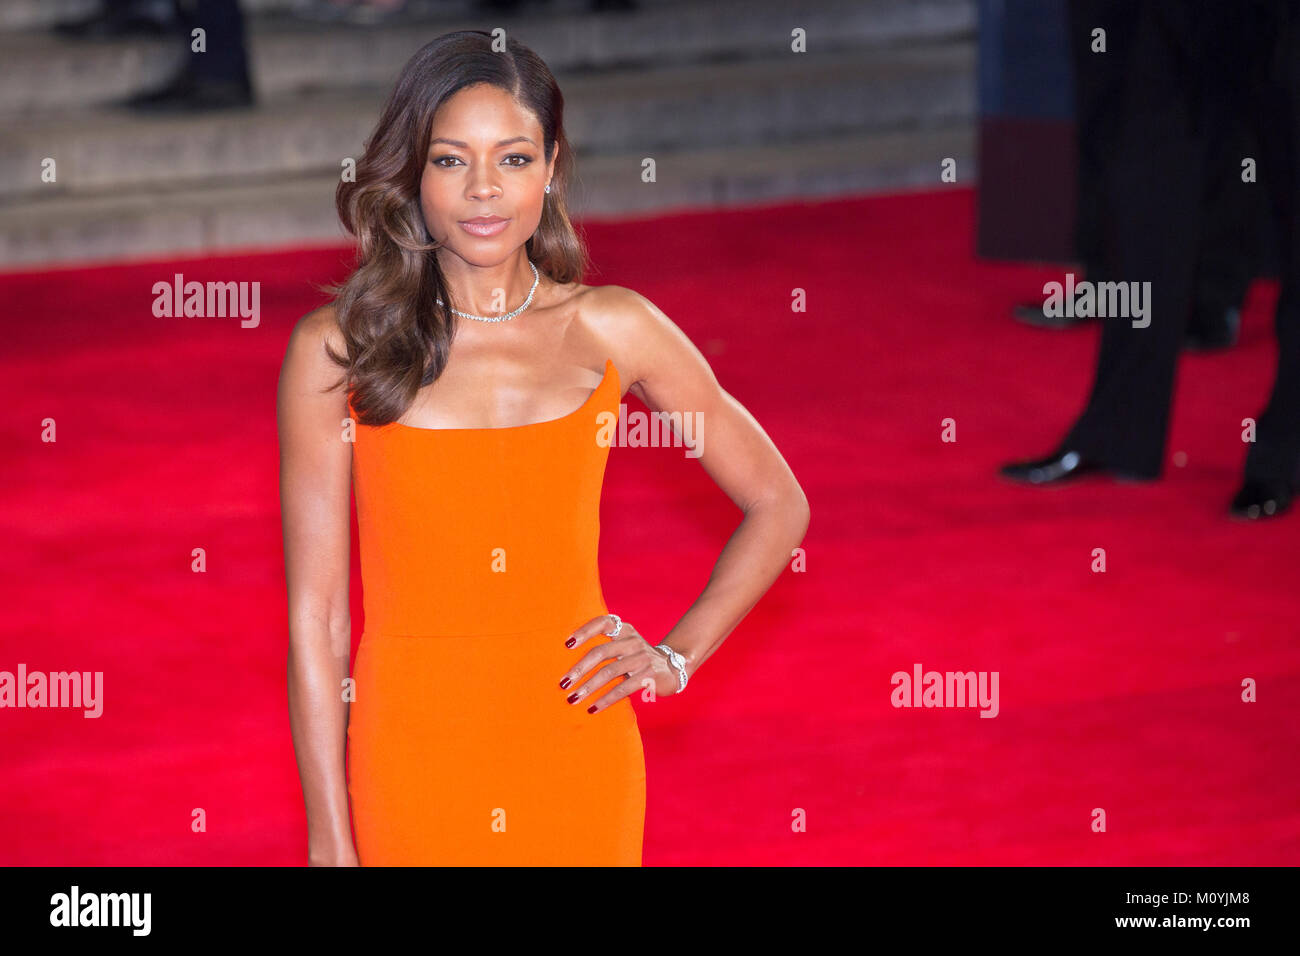 London, UK, 26 October 2015, Naomie Harris attends the World premiere of 'Spectre' at the Royal Albert Hall. - Stock Image